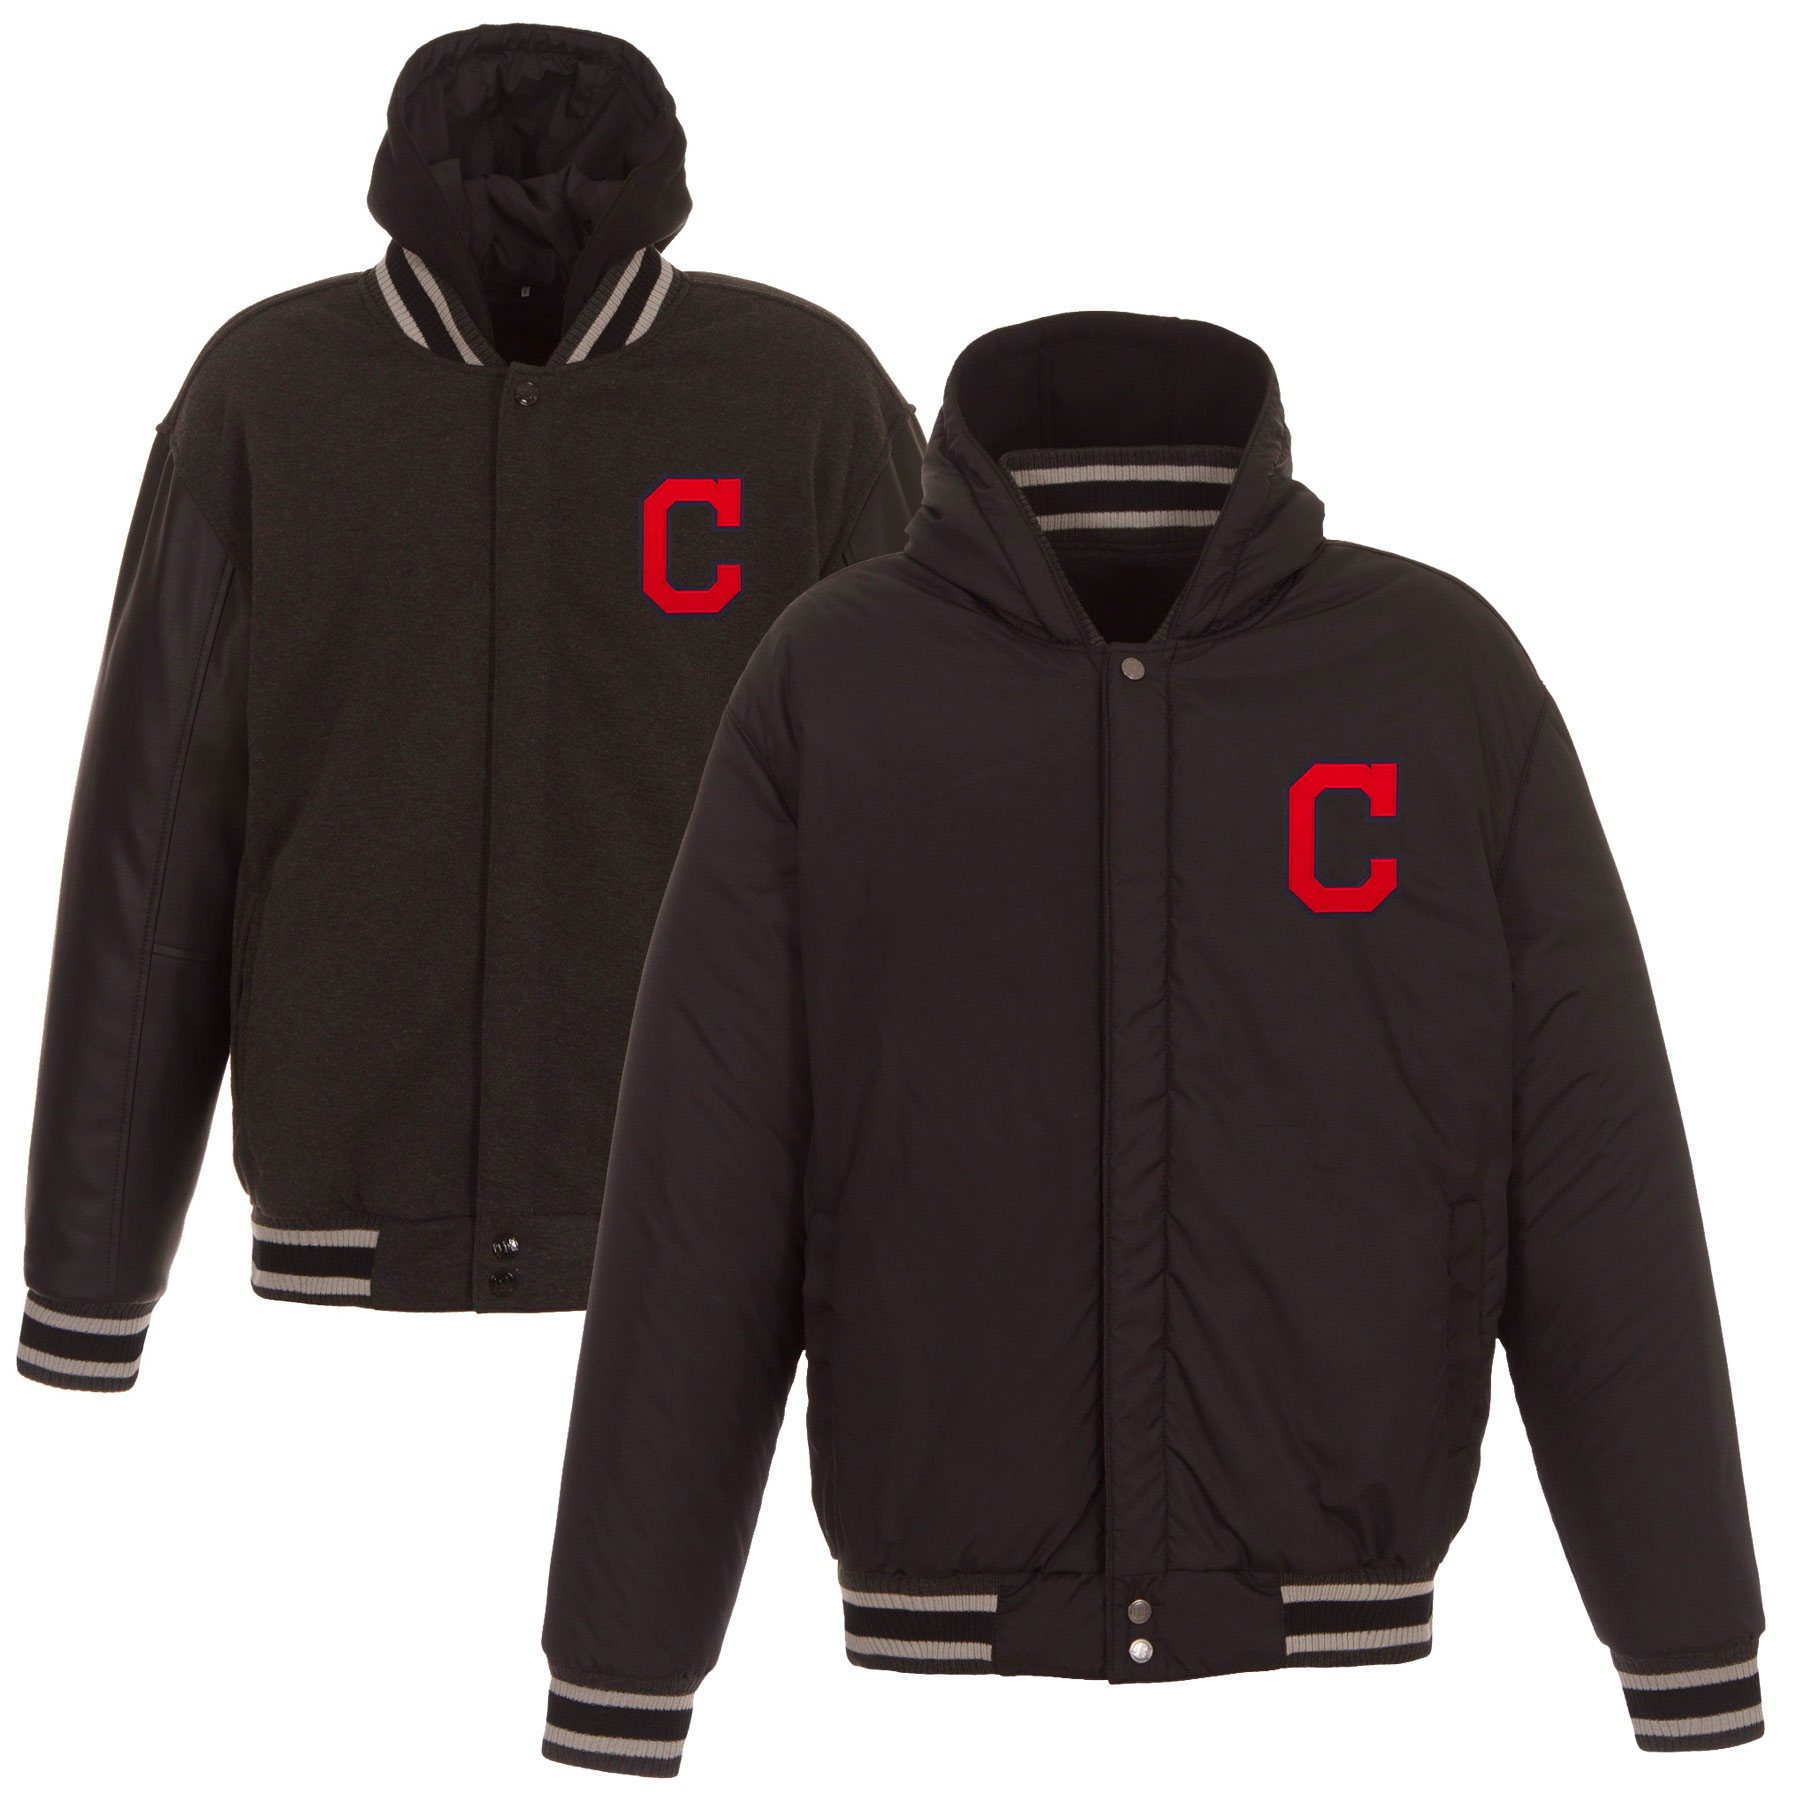 Cleveland Indians JH Design Heavyweight Reversible Full Snap Hoodie - Charcoal